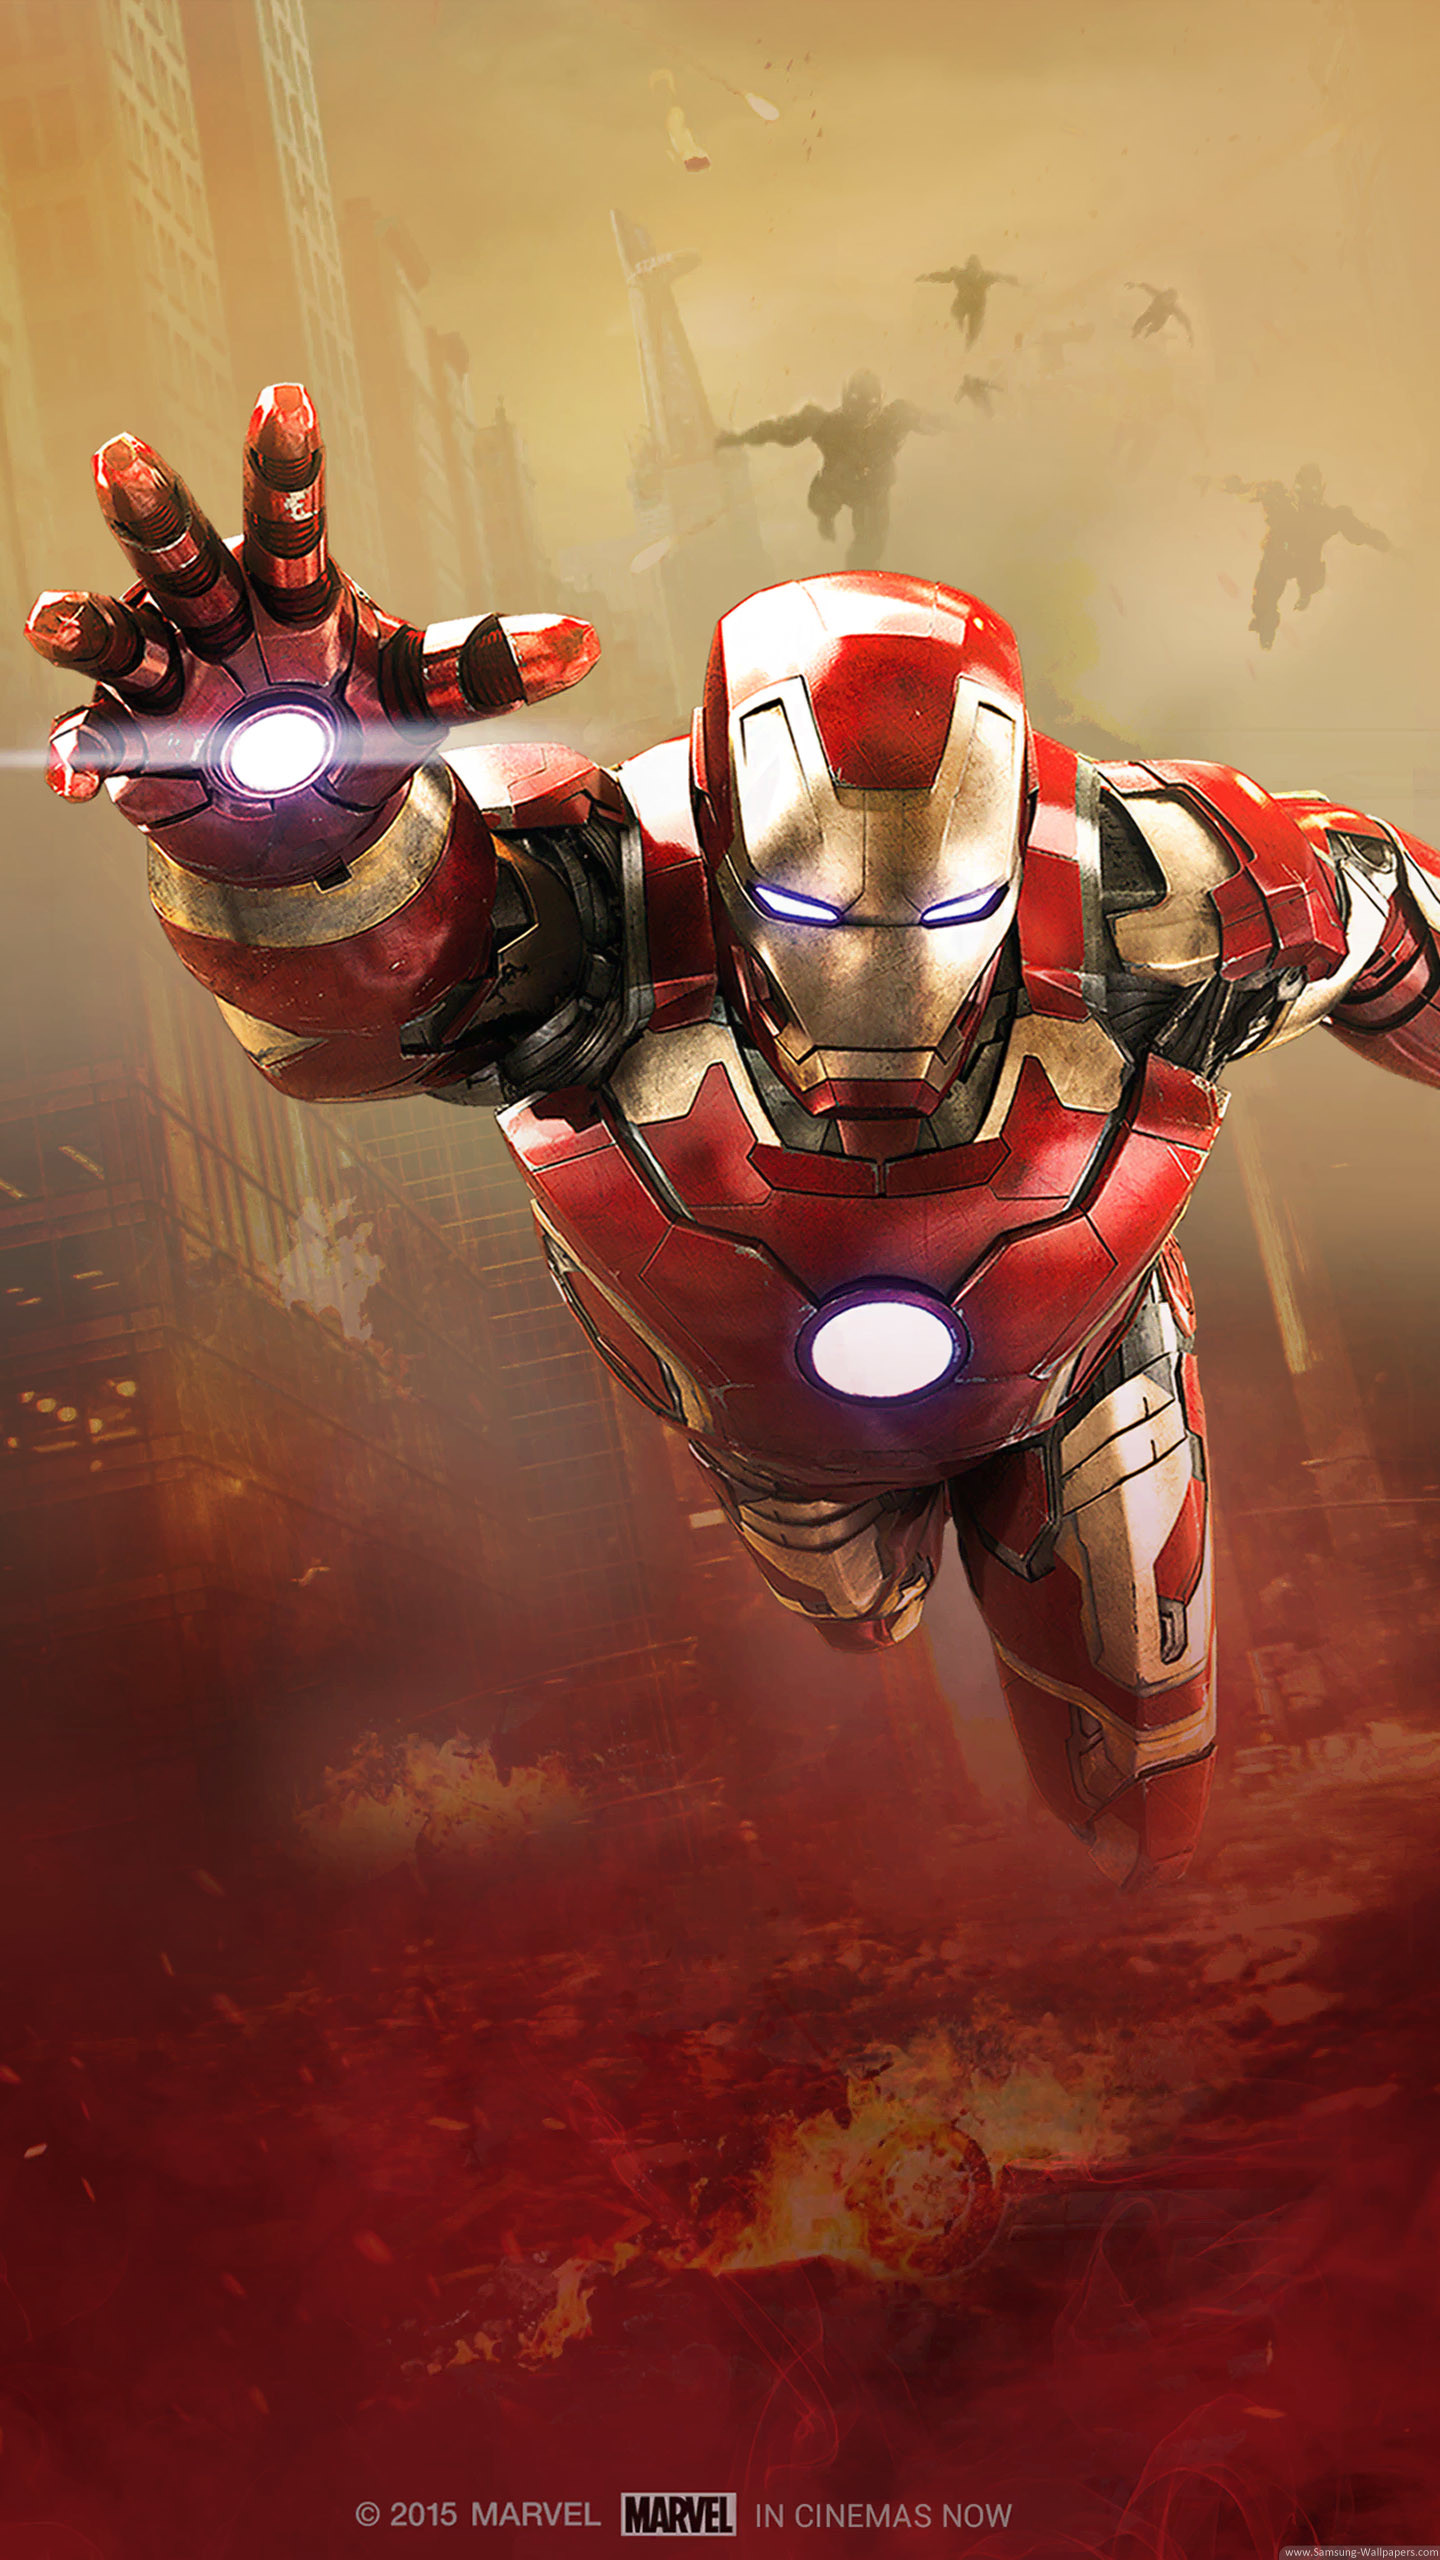 iron man screensavers and wallpaper (66+ images)